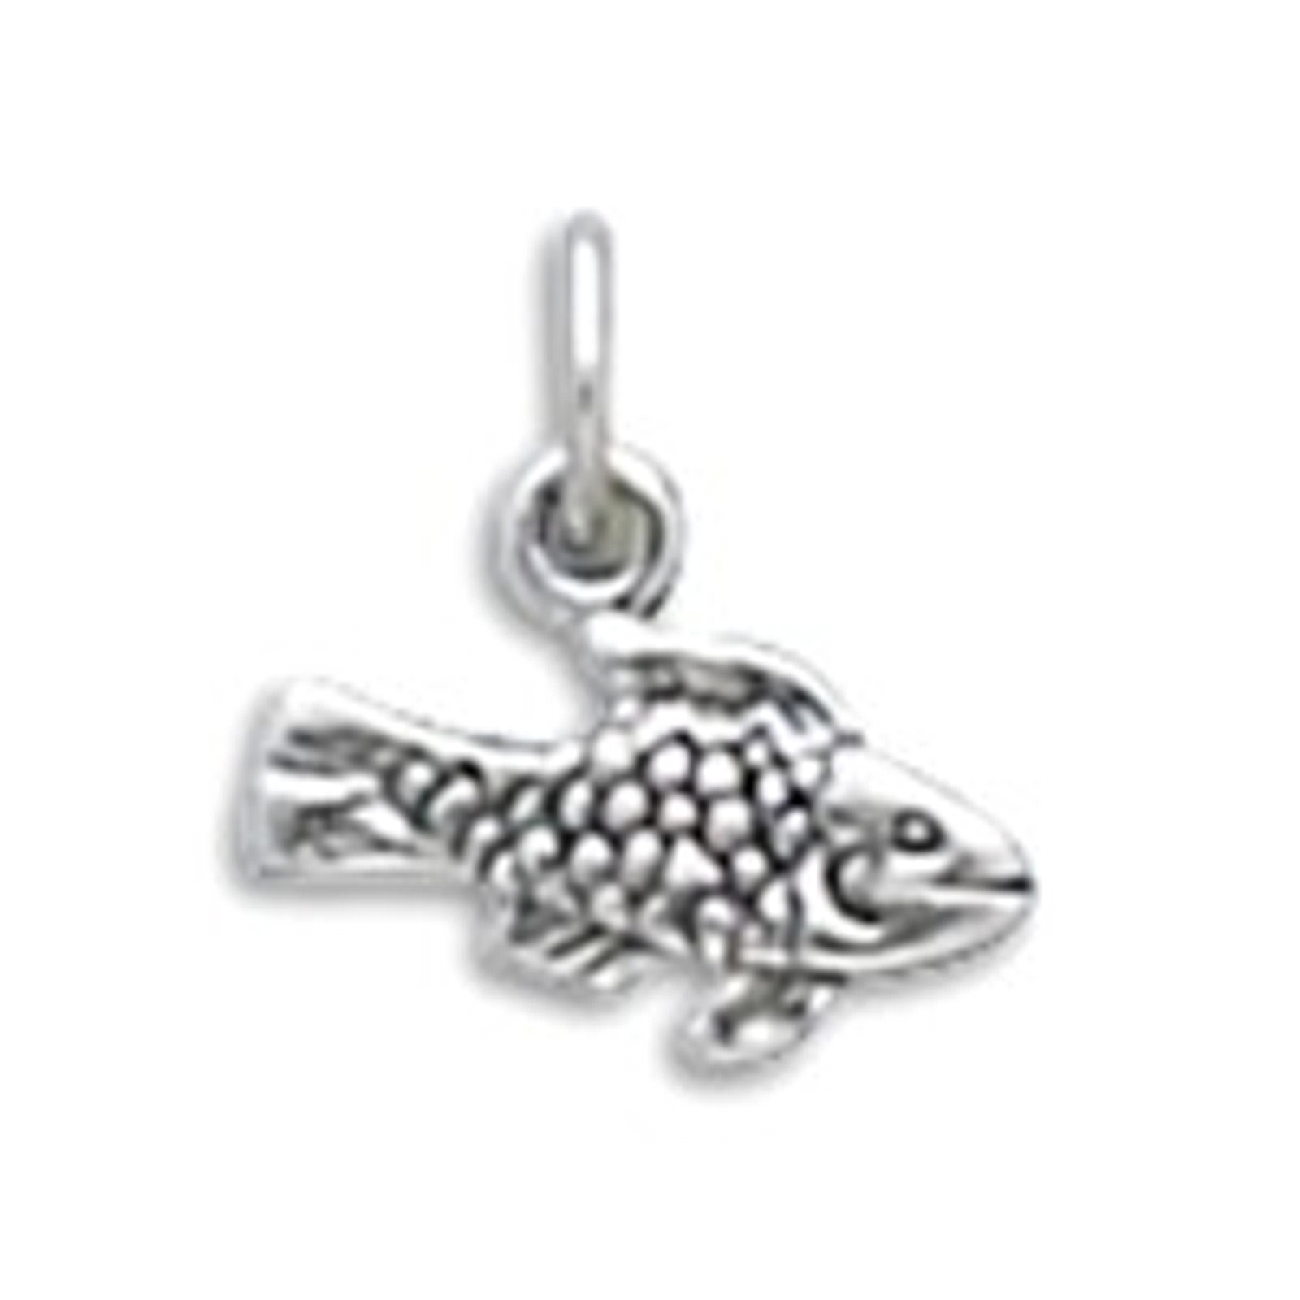 Small 3D Scaled Fish Charm